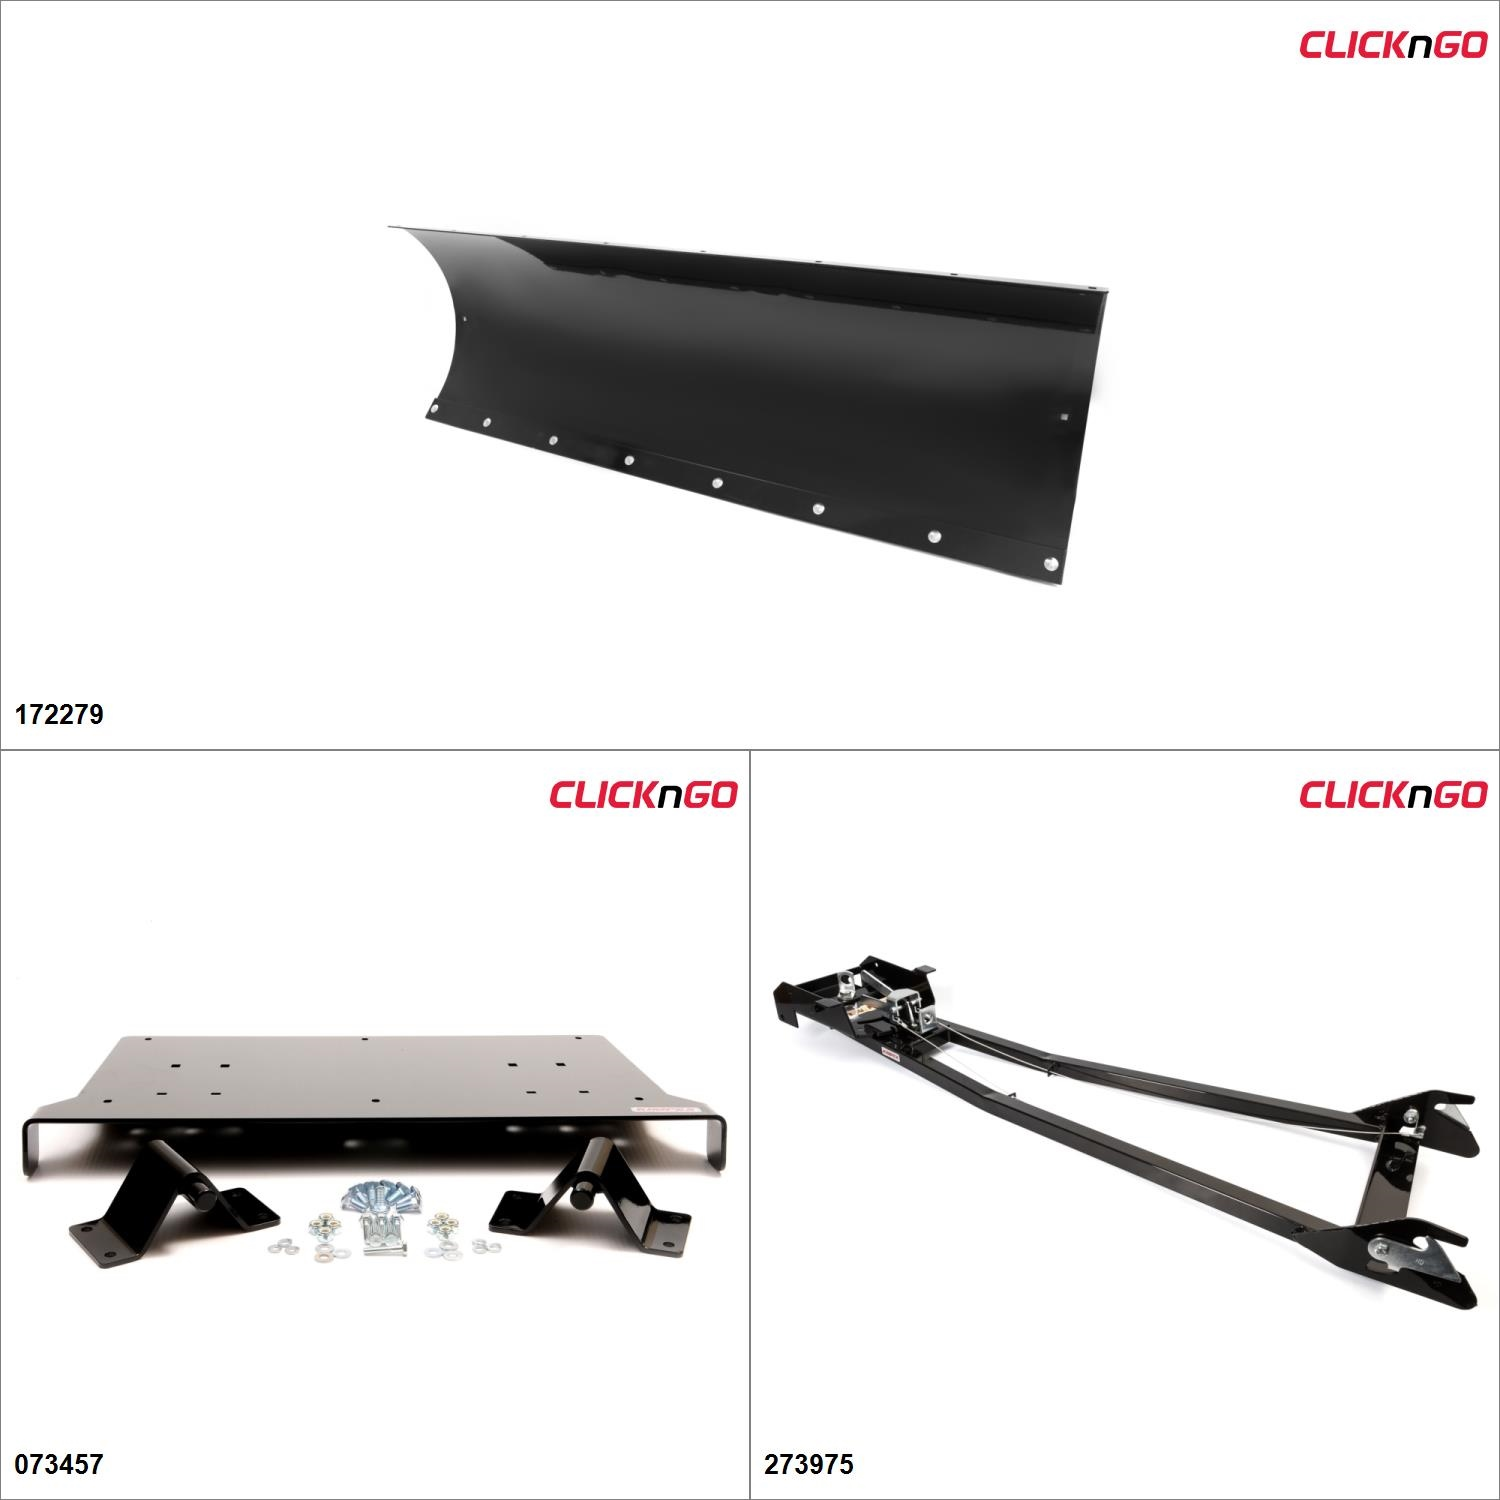 "ClickNGo GEN 1 UTV Plow Kit - 72"", Polaris Ranger 400 2014 Black  #KK00000130_1"